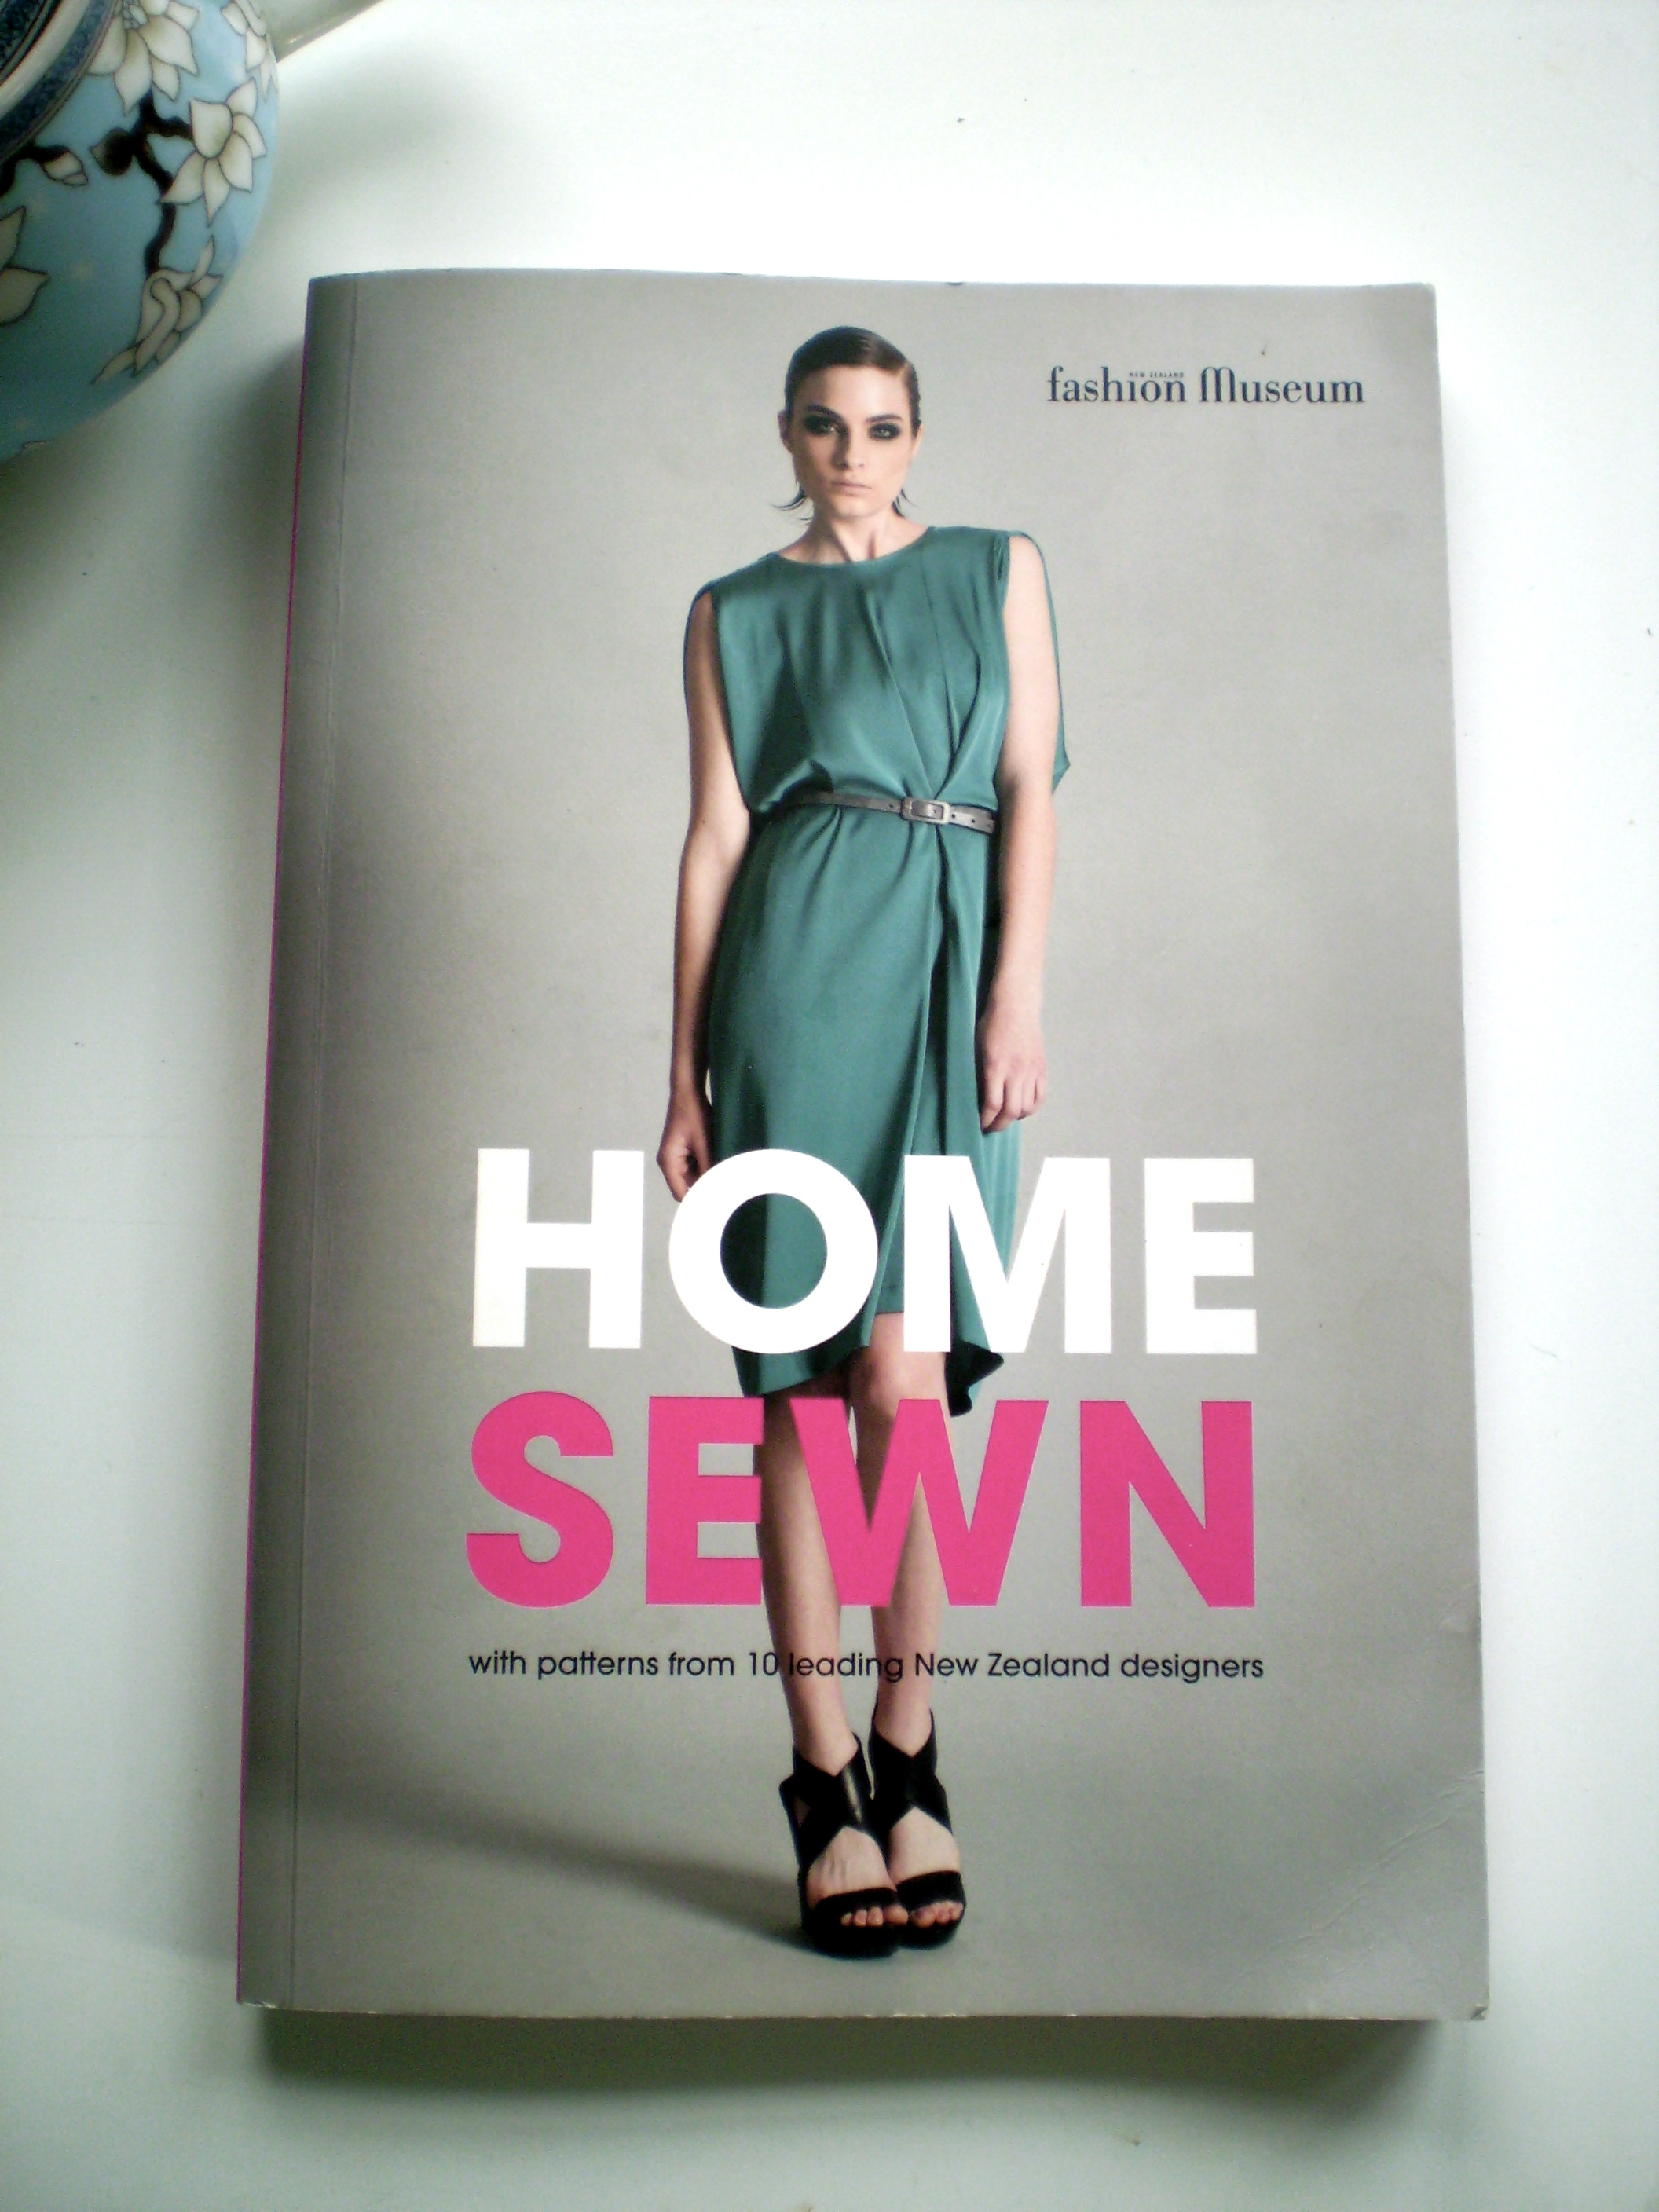 Little Housewife: Giveaway - Homesewn by Fashion Museum of New Home sewn fashion museum